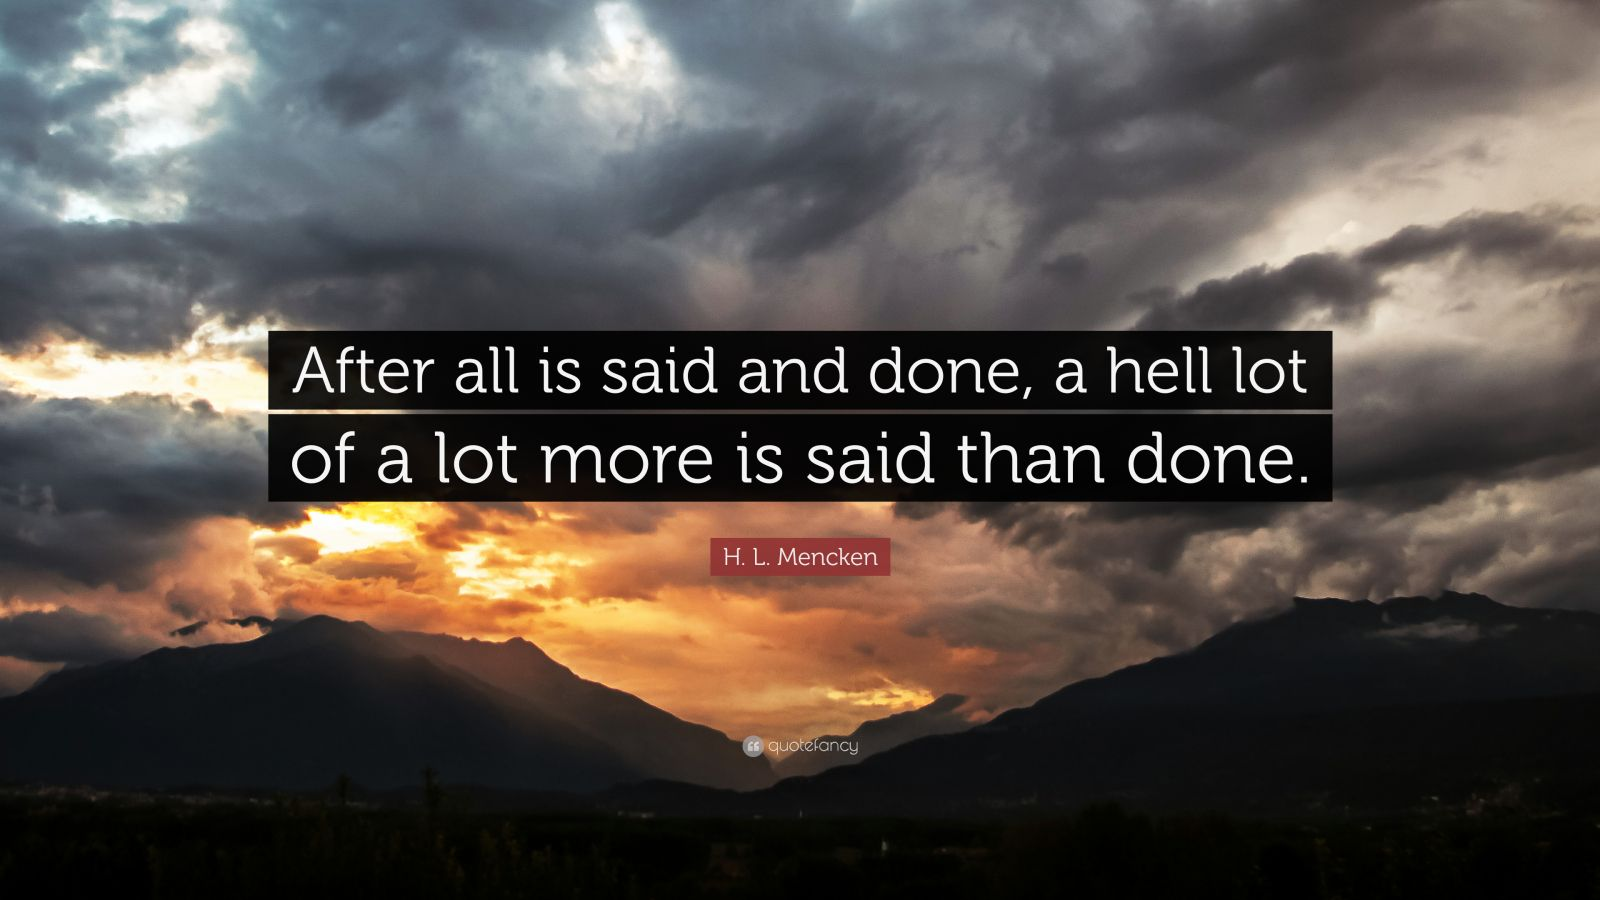 """H. L. Mencken Quote: """"After all is said and done, a hell lot of a lot more is said than done."""""""